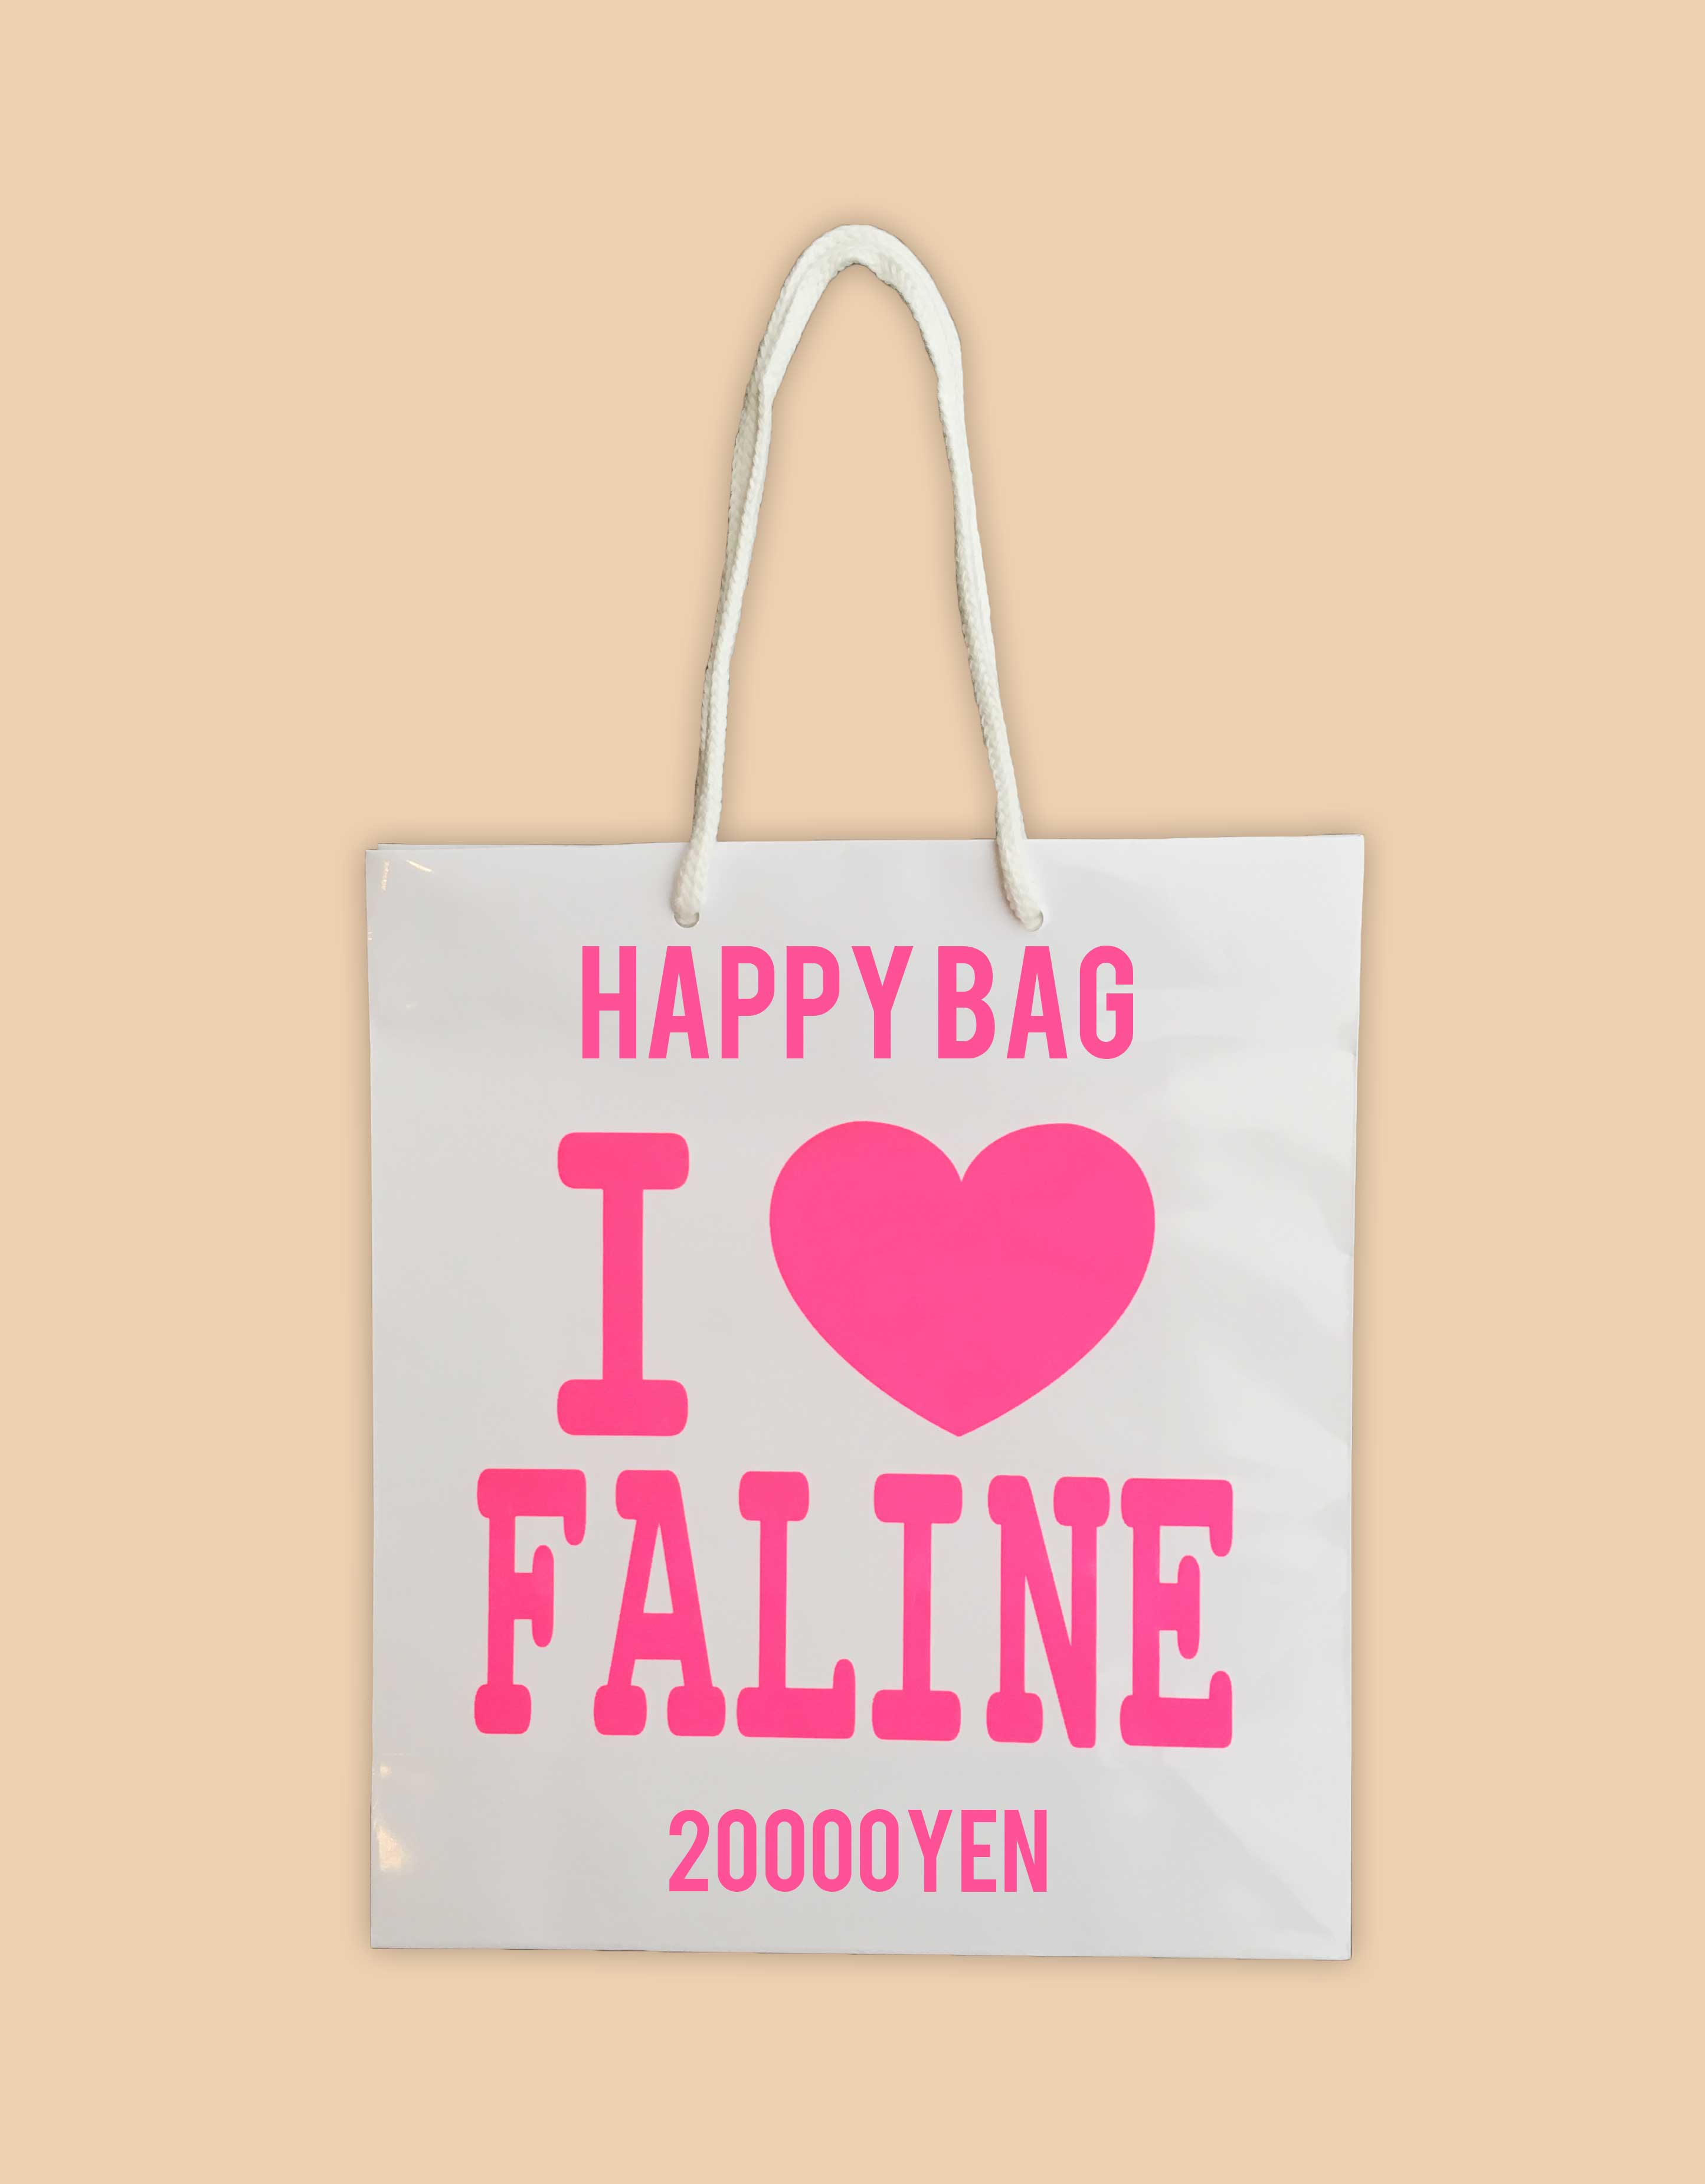 Happy Bag 2017 (20000yen)